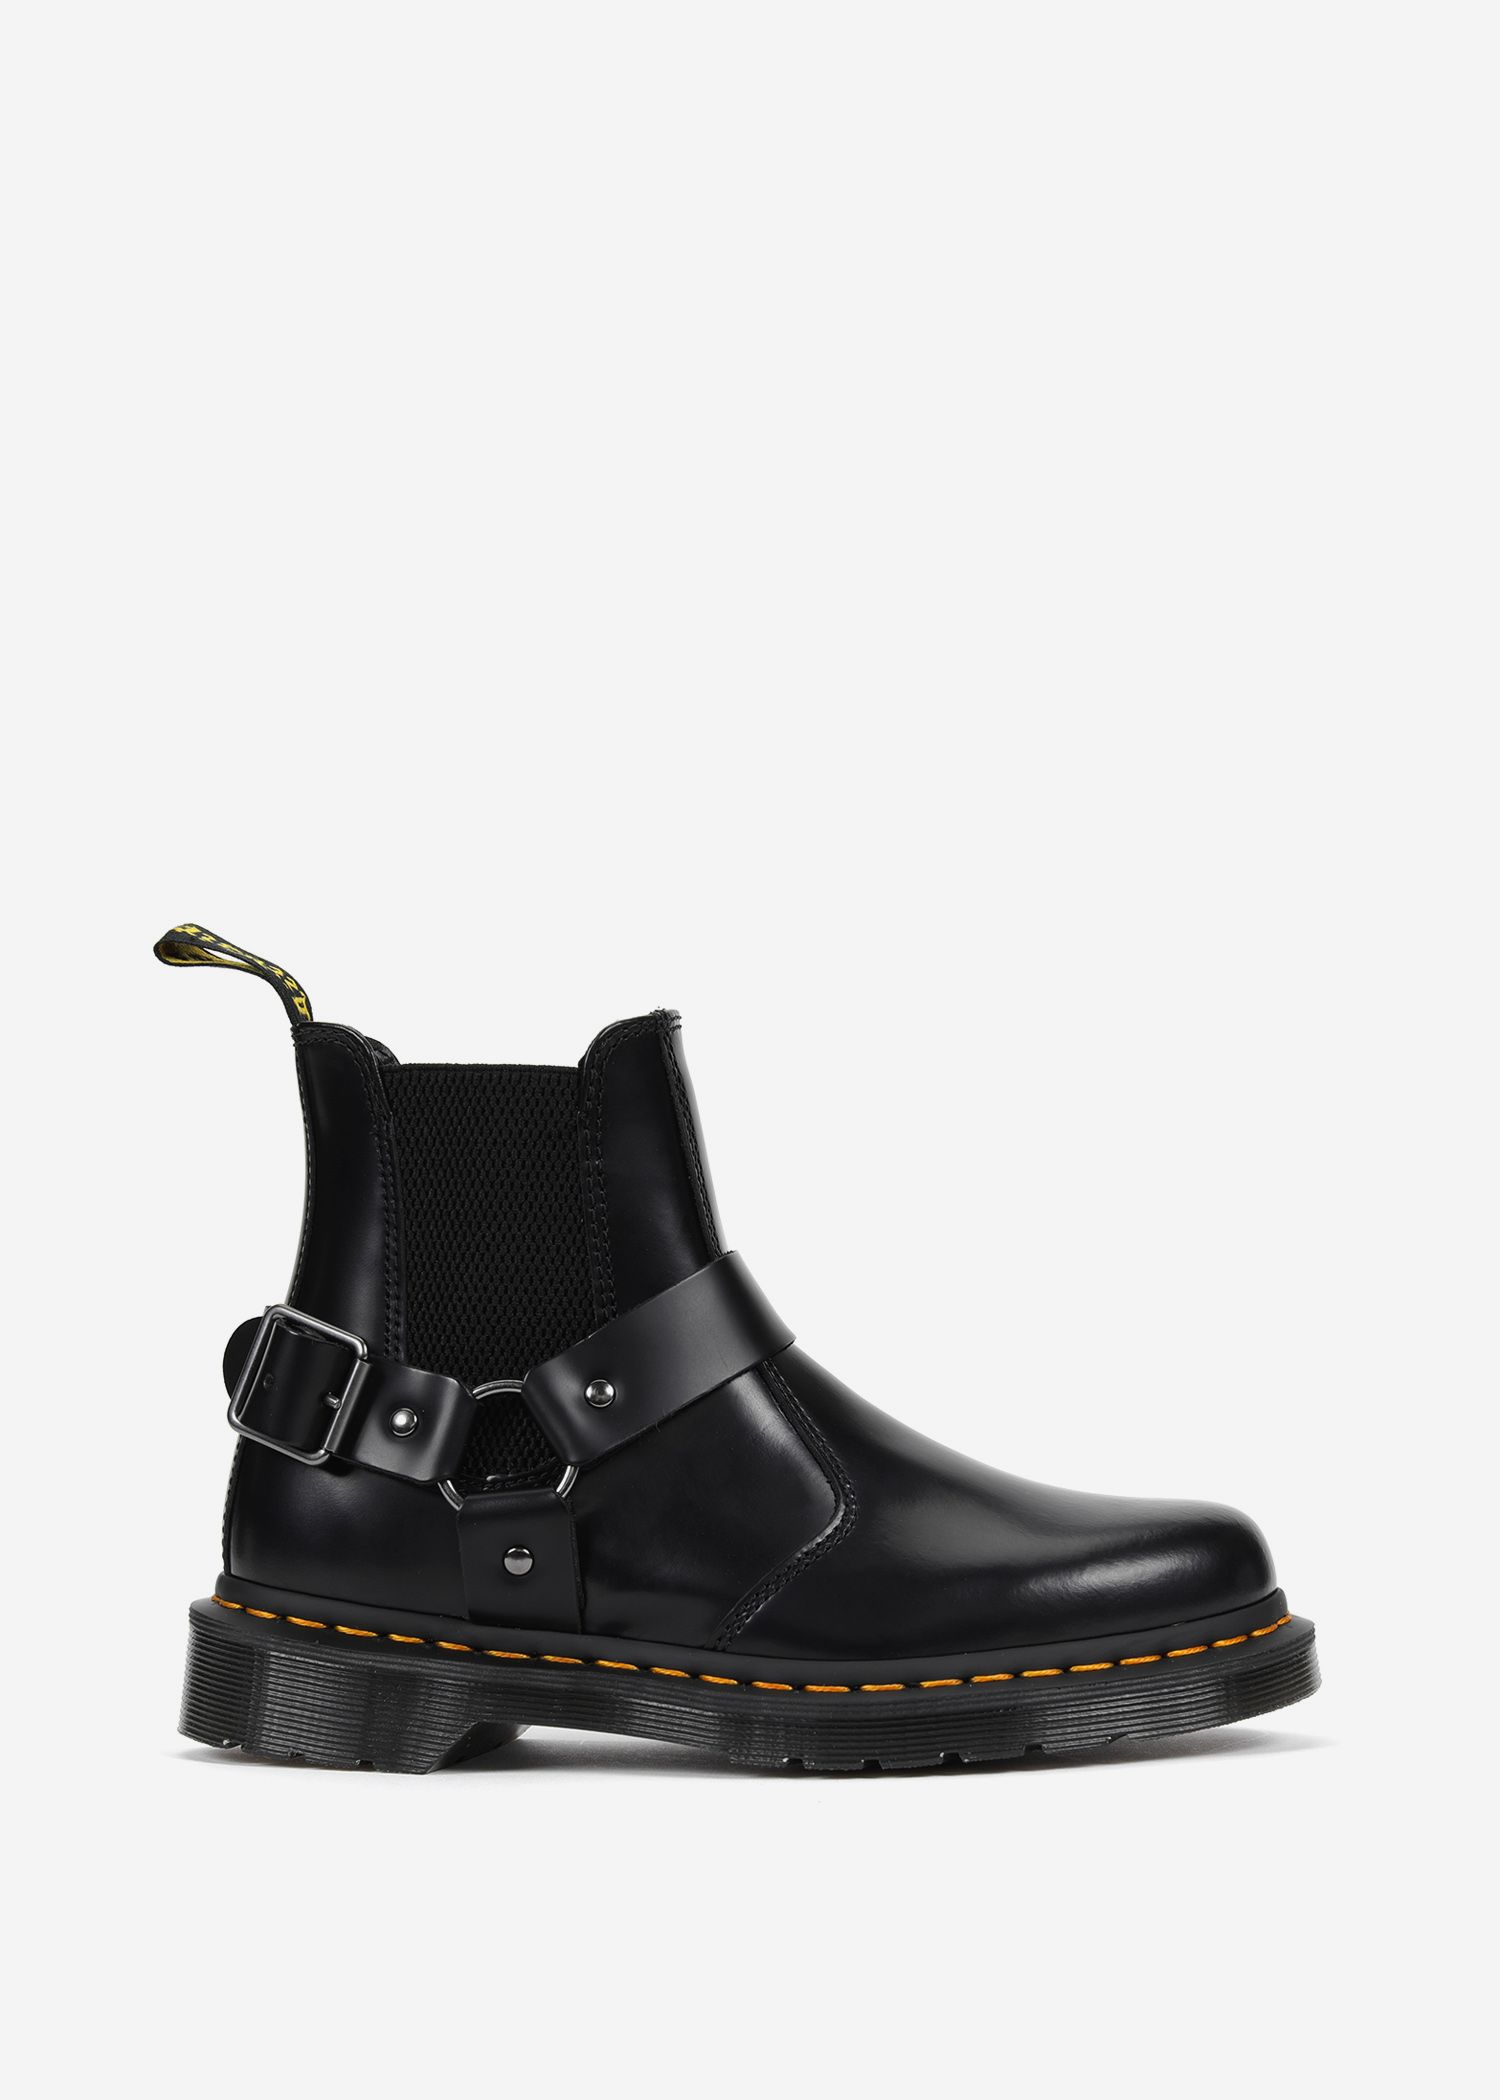 930e8337d89 Dr. Martens Wincox Polished In Black | clothing | Boots, Dr martens ...